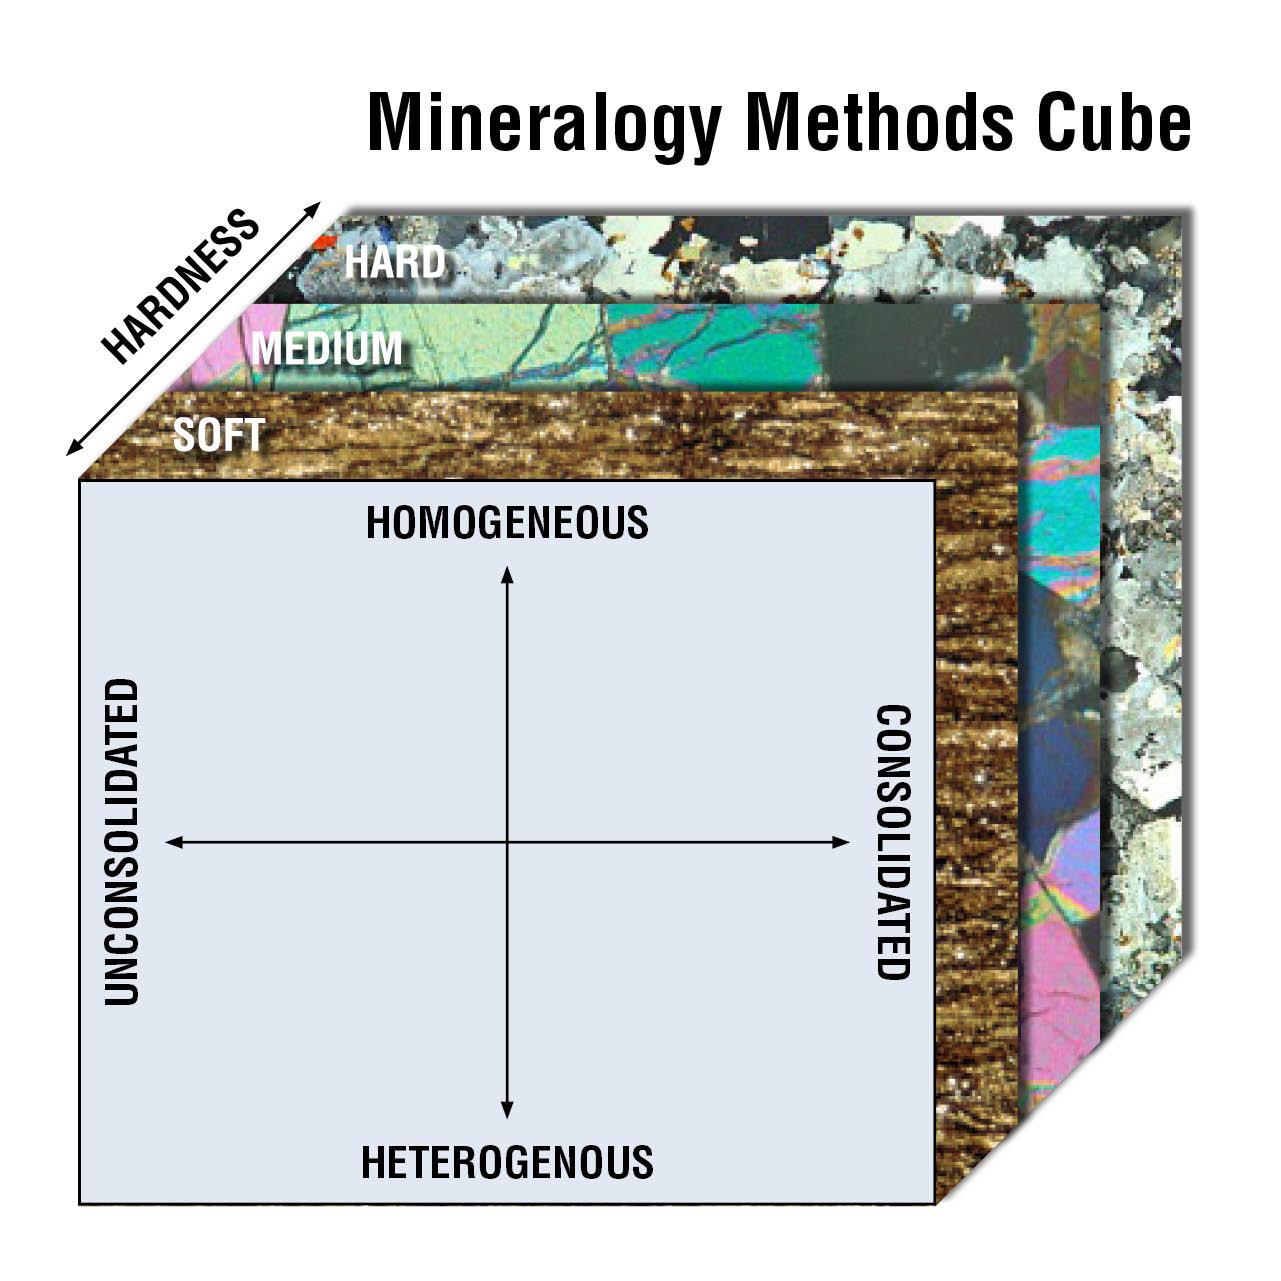 Mineralogy Method Cube